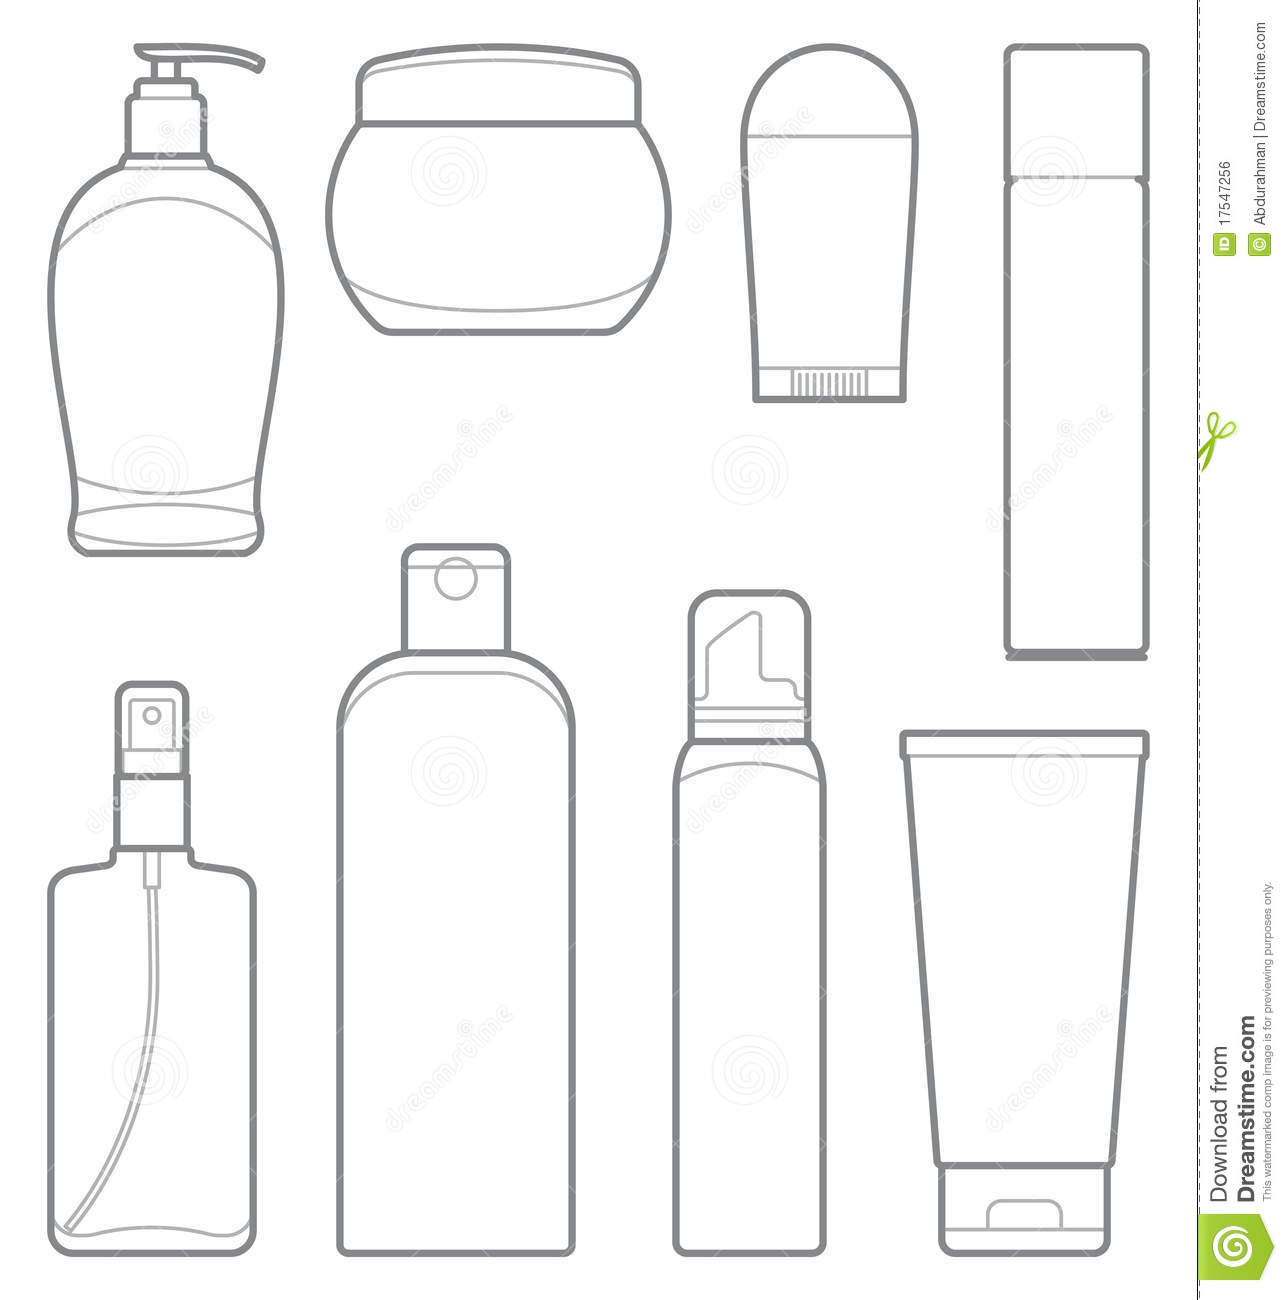 bottles of cosmetic products stock vector